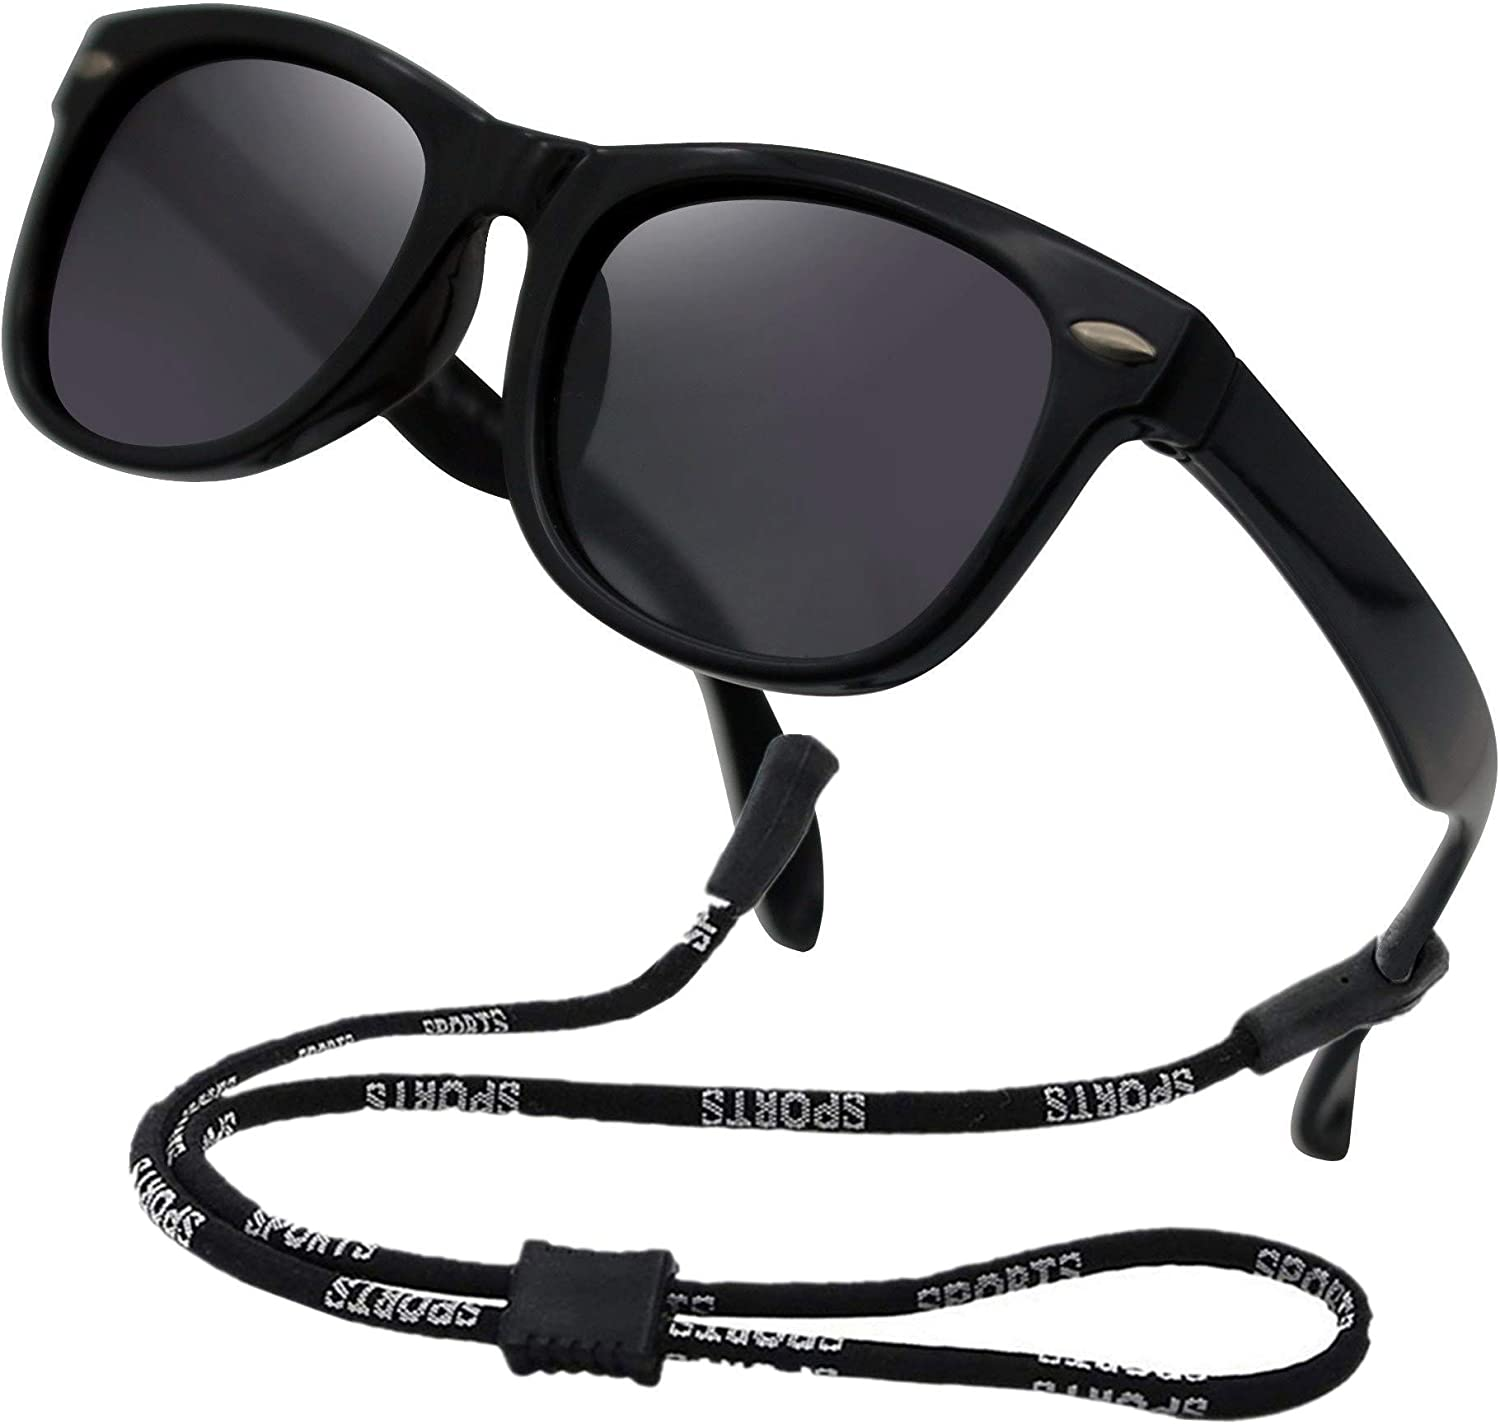 Kids Toddler Baby Flexible Retro Polarized Sunglasses with Strap for Boys Girls